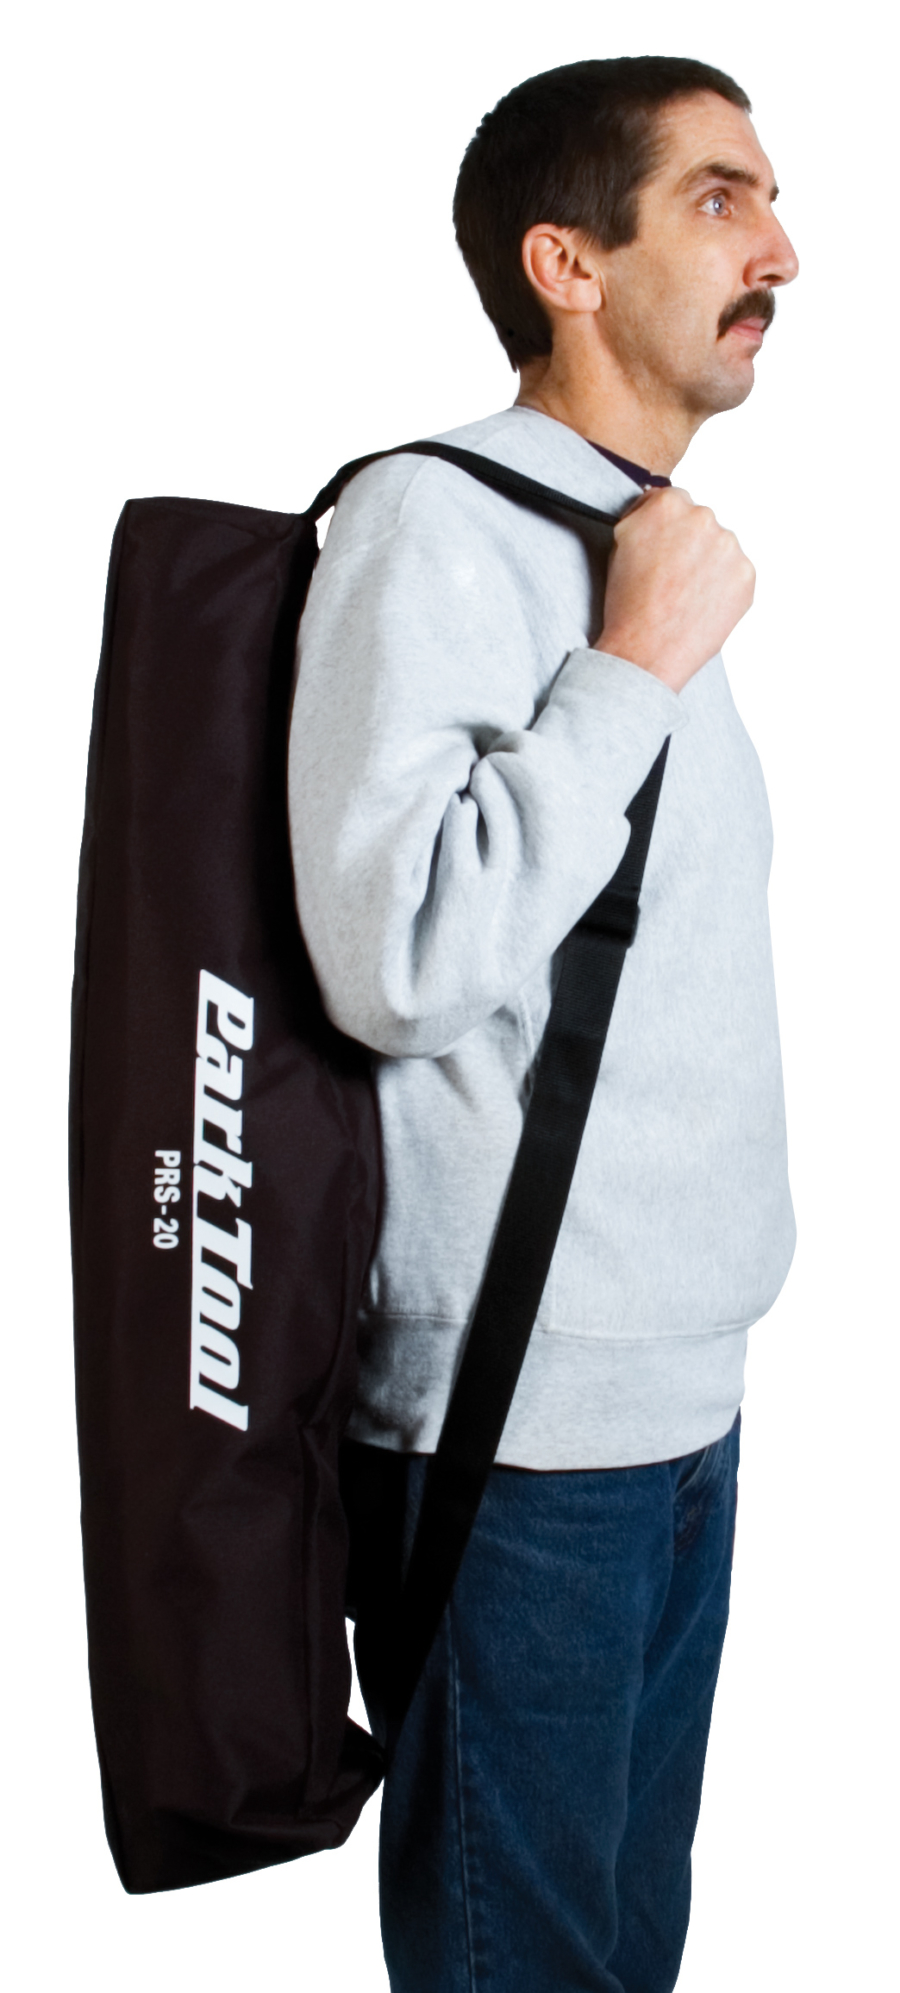 The Park Tool BAG-20, Travel and Storage Bag held on models back, enlarged